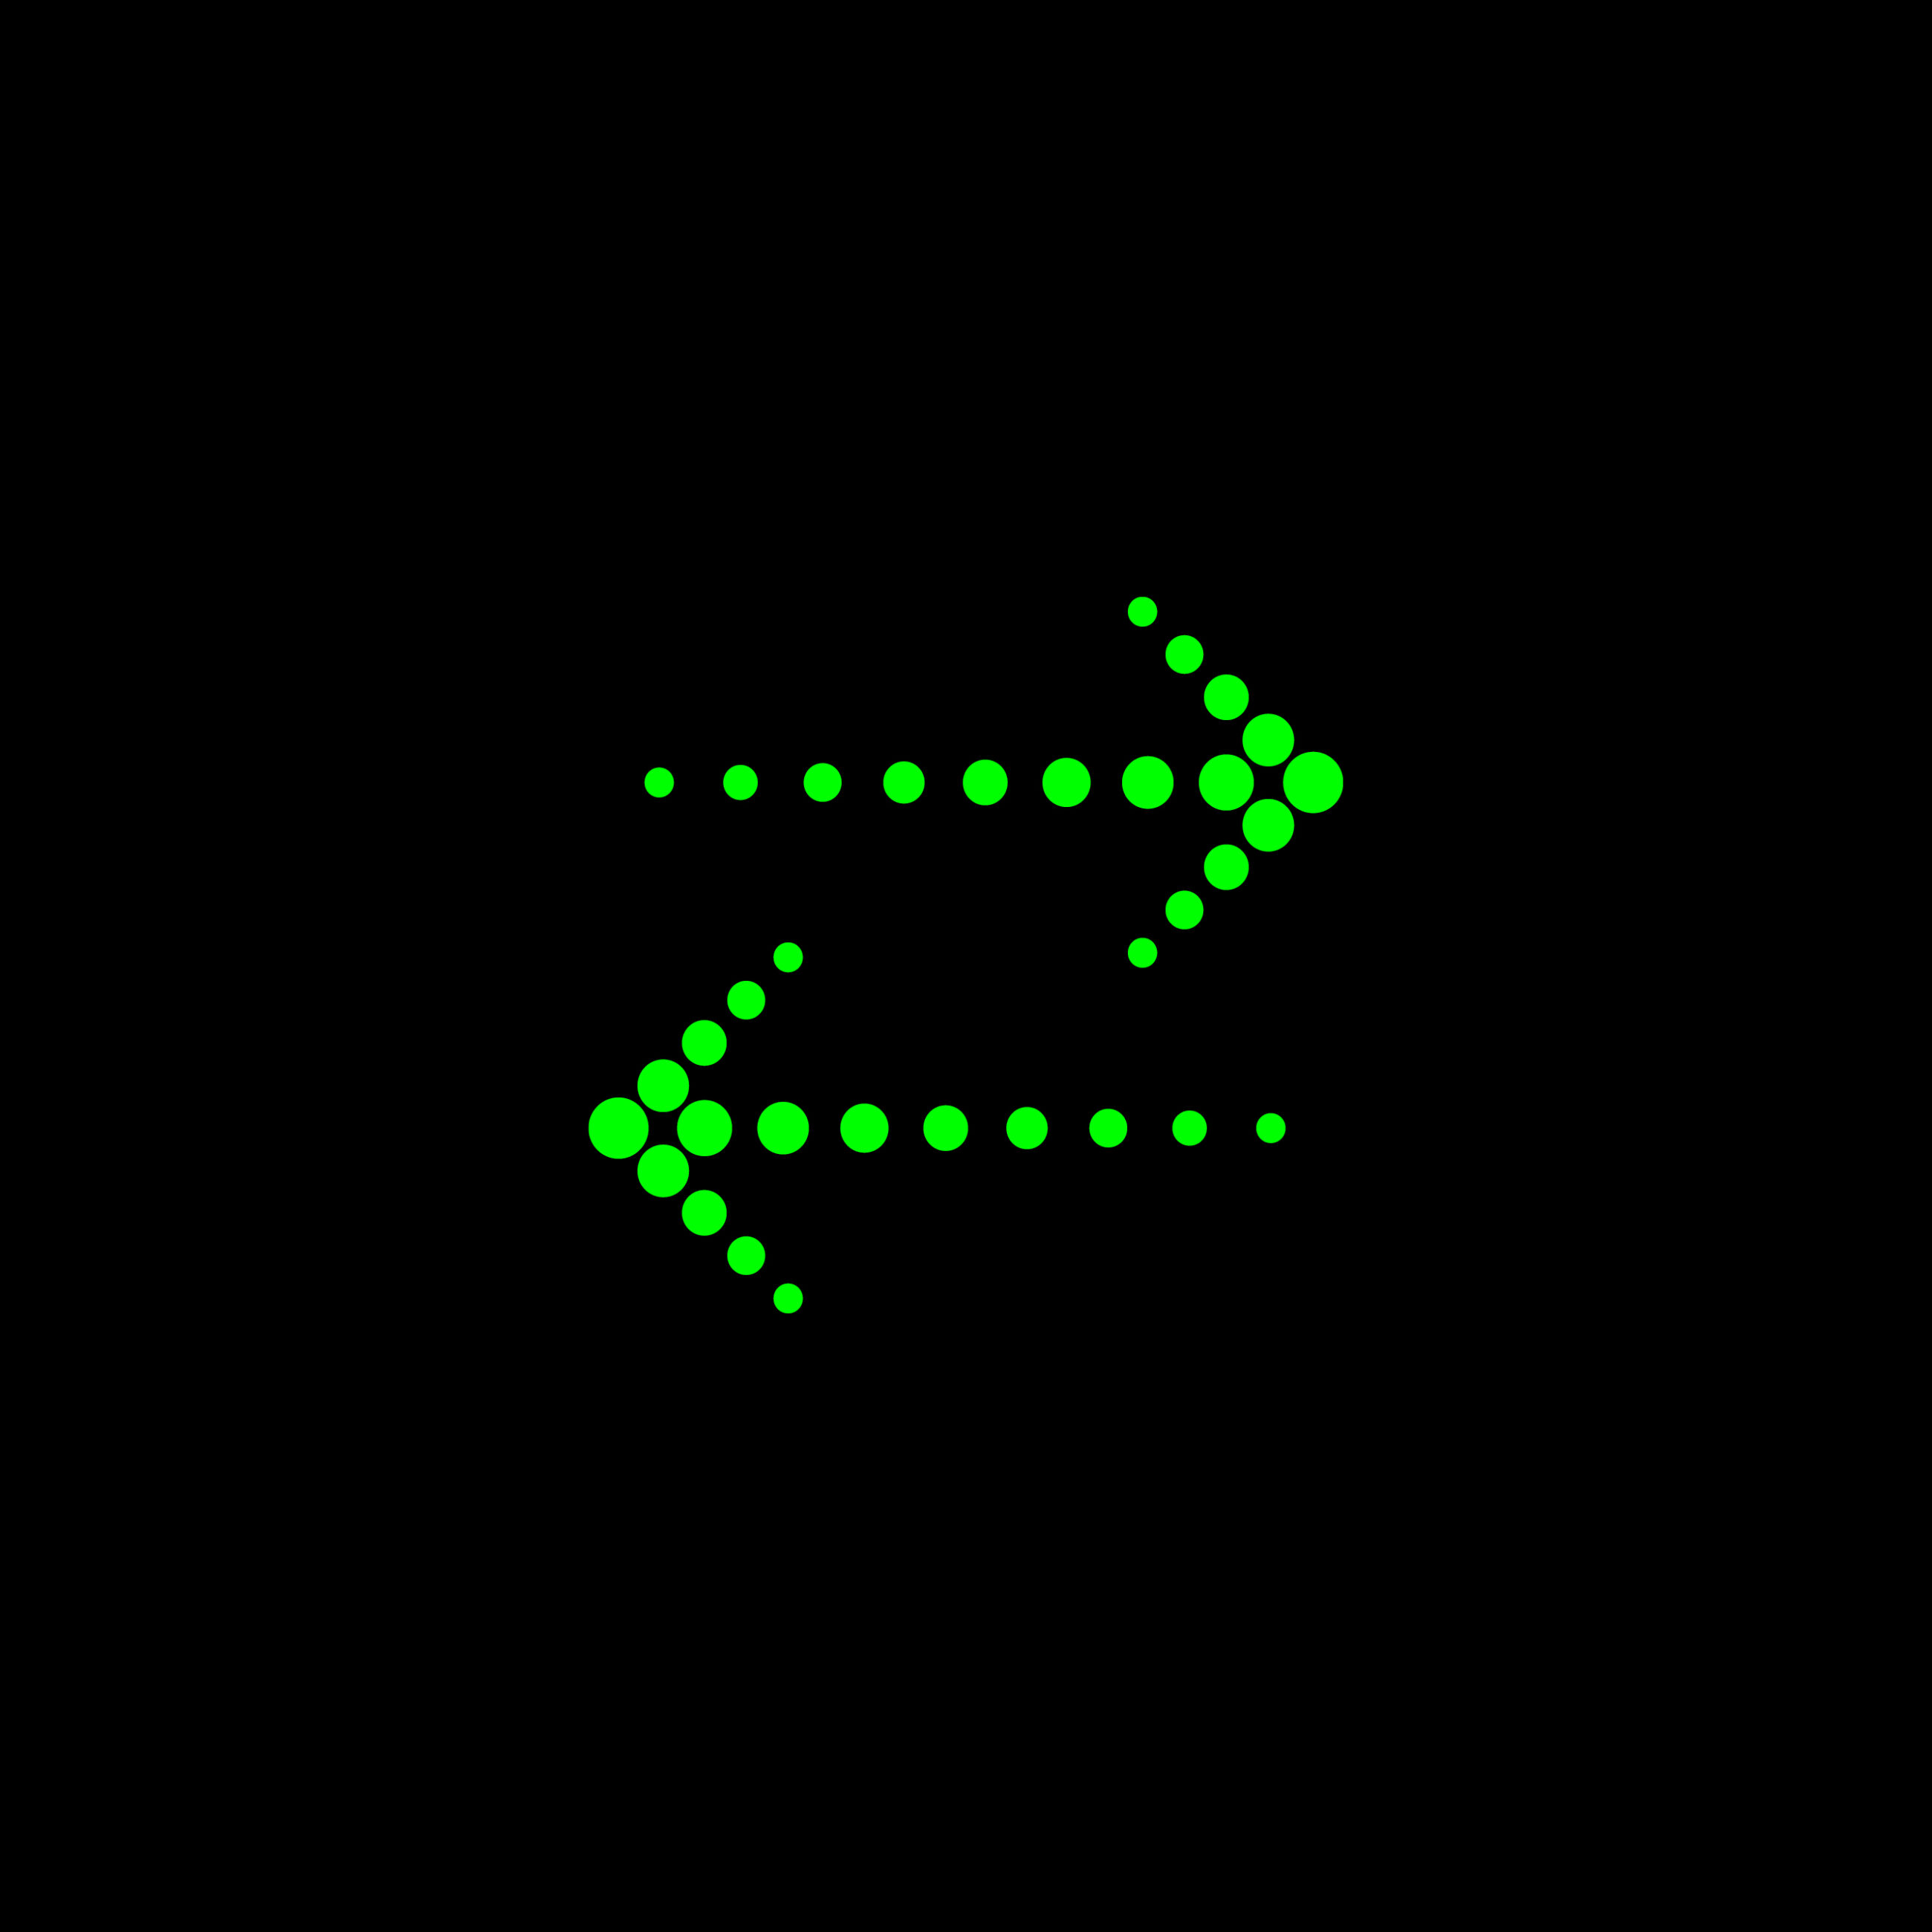 Bright green dotted arrows